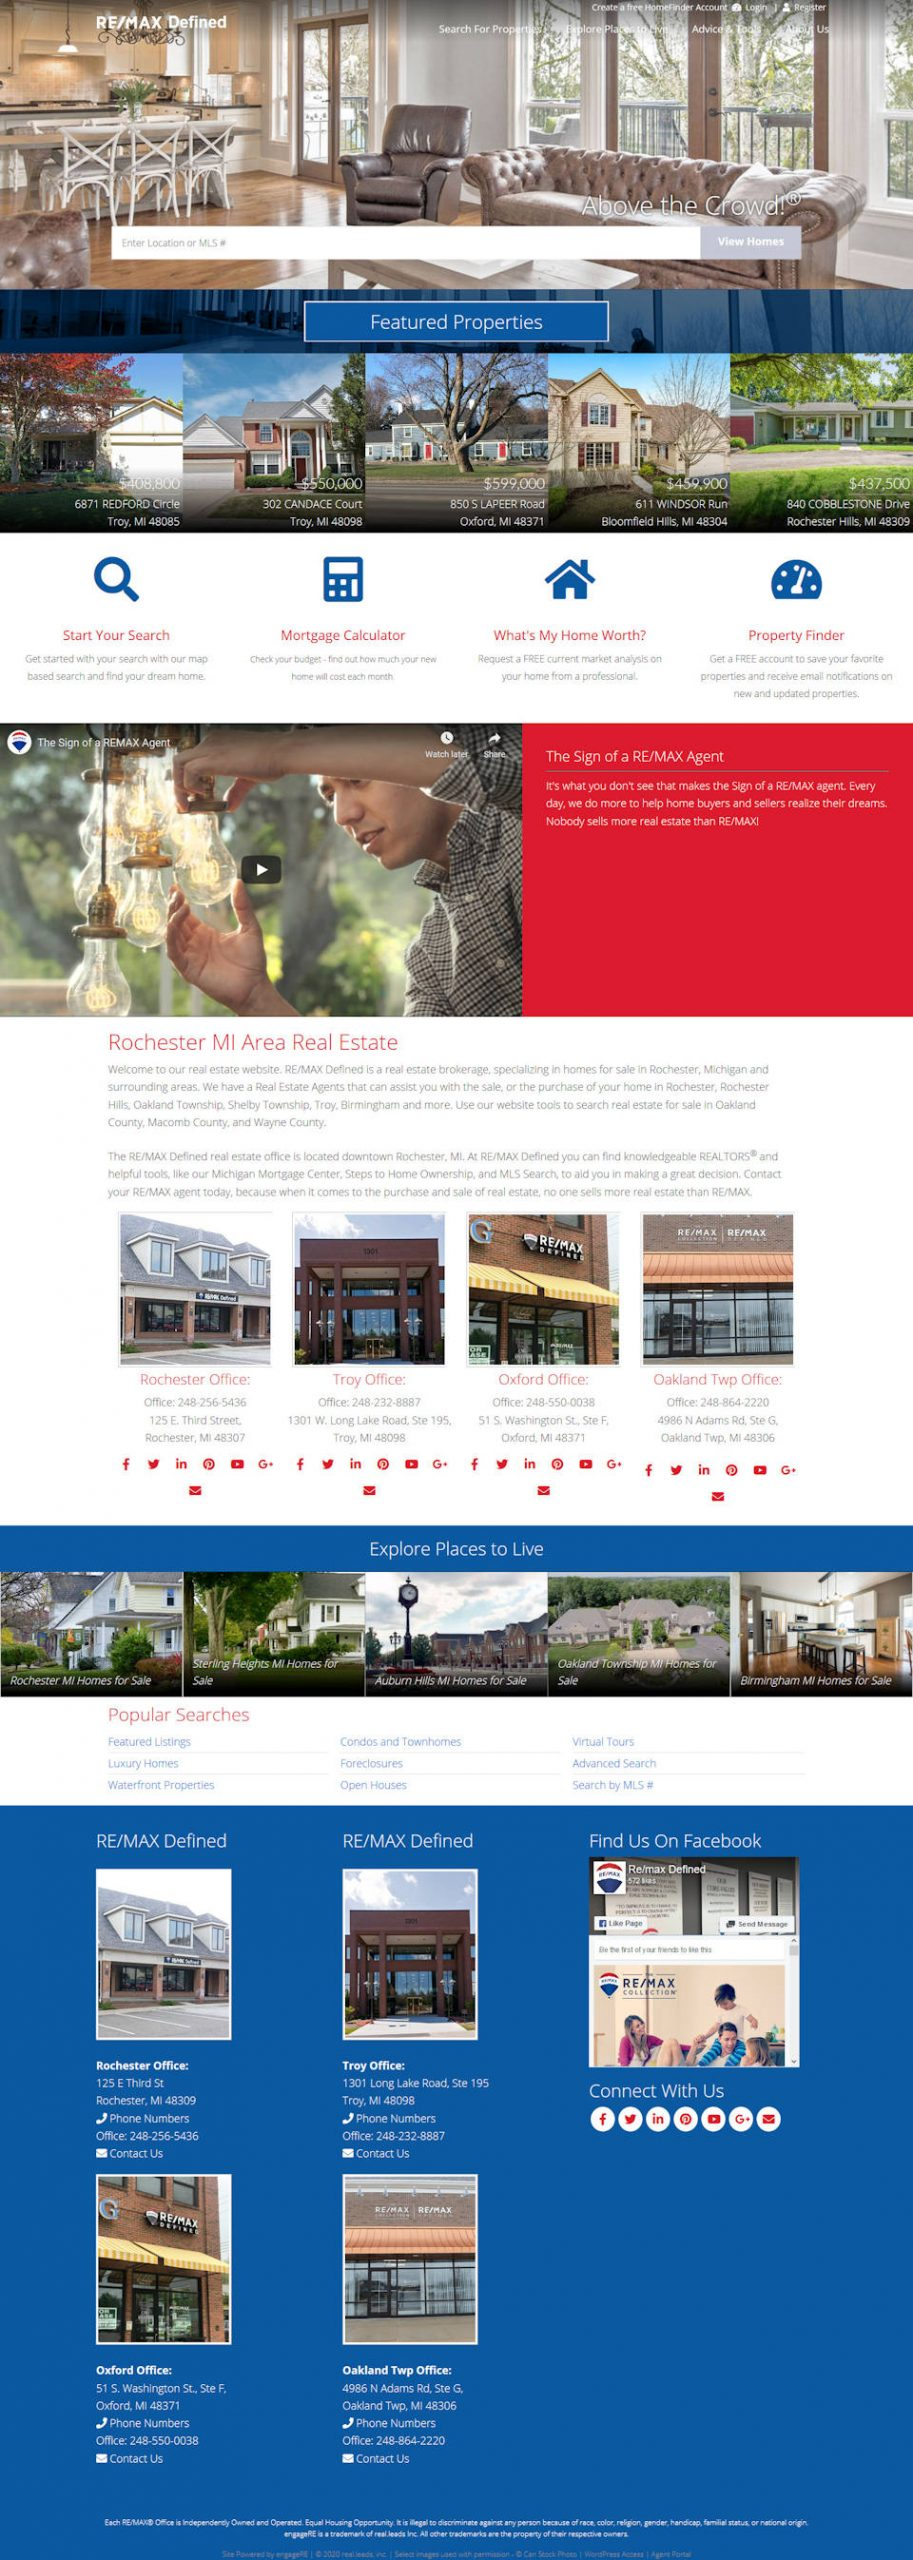 RE/MAX Defined full website screenshot